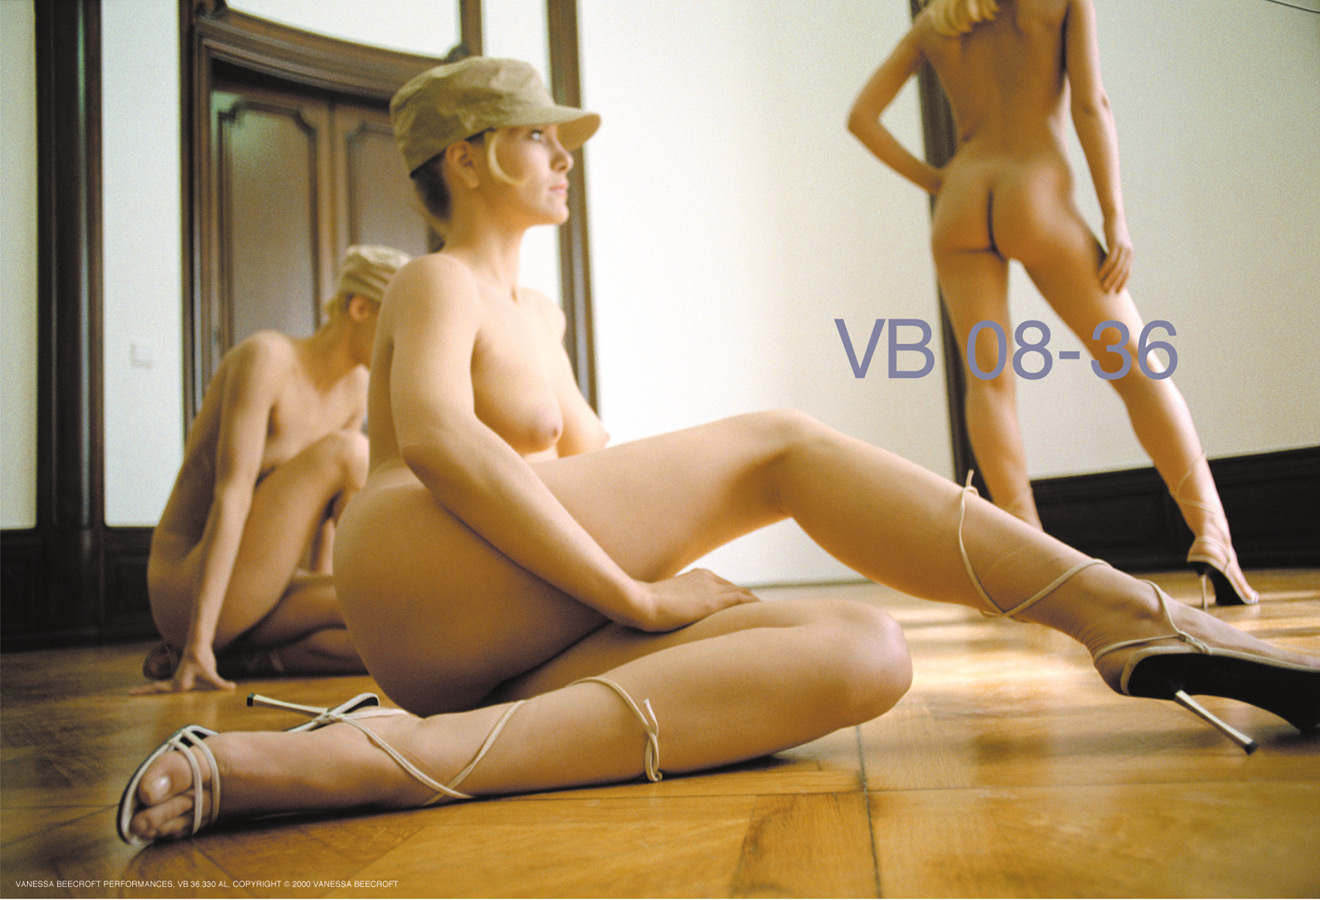 Vanessa Beecroft - VB 08-36